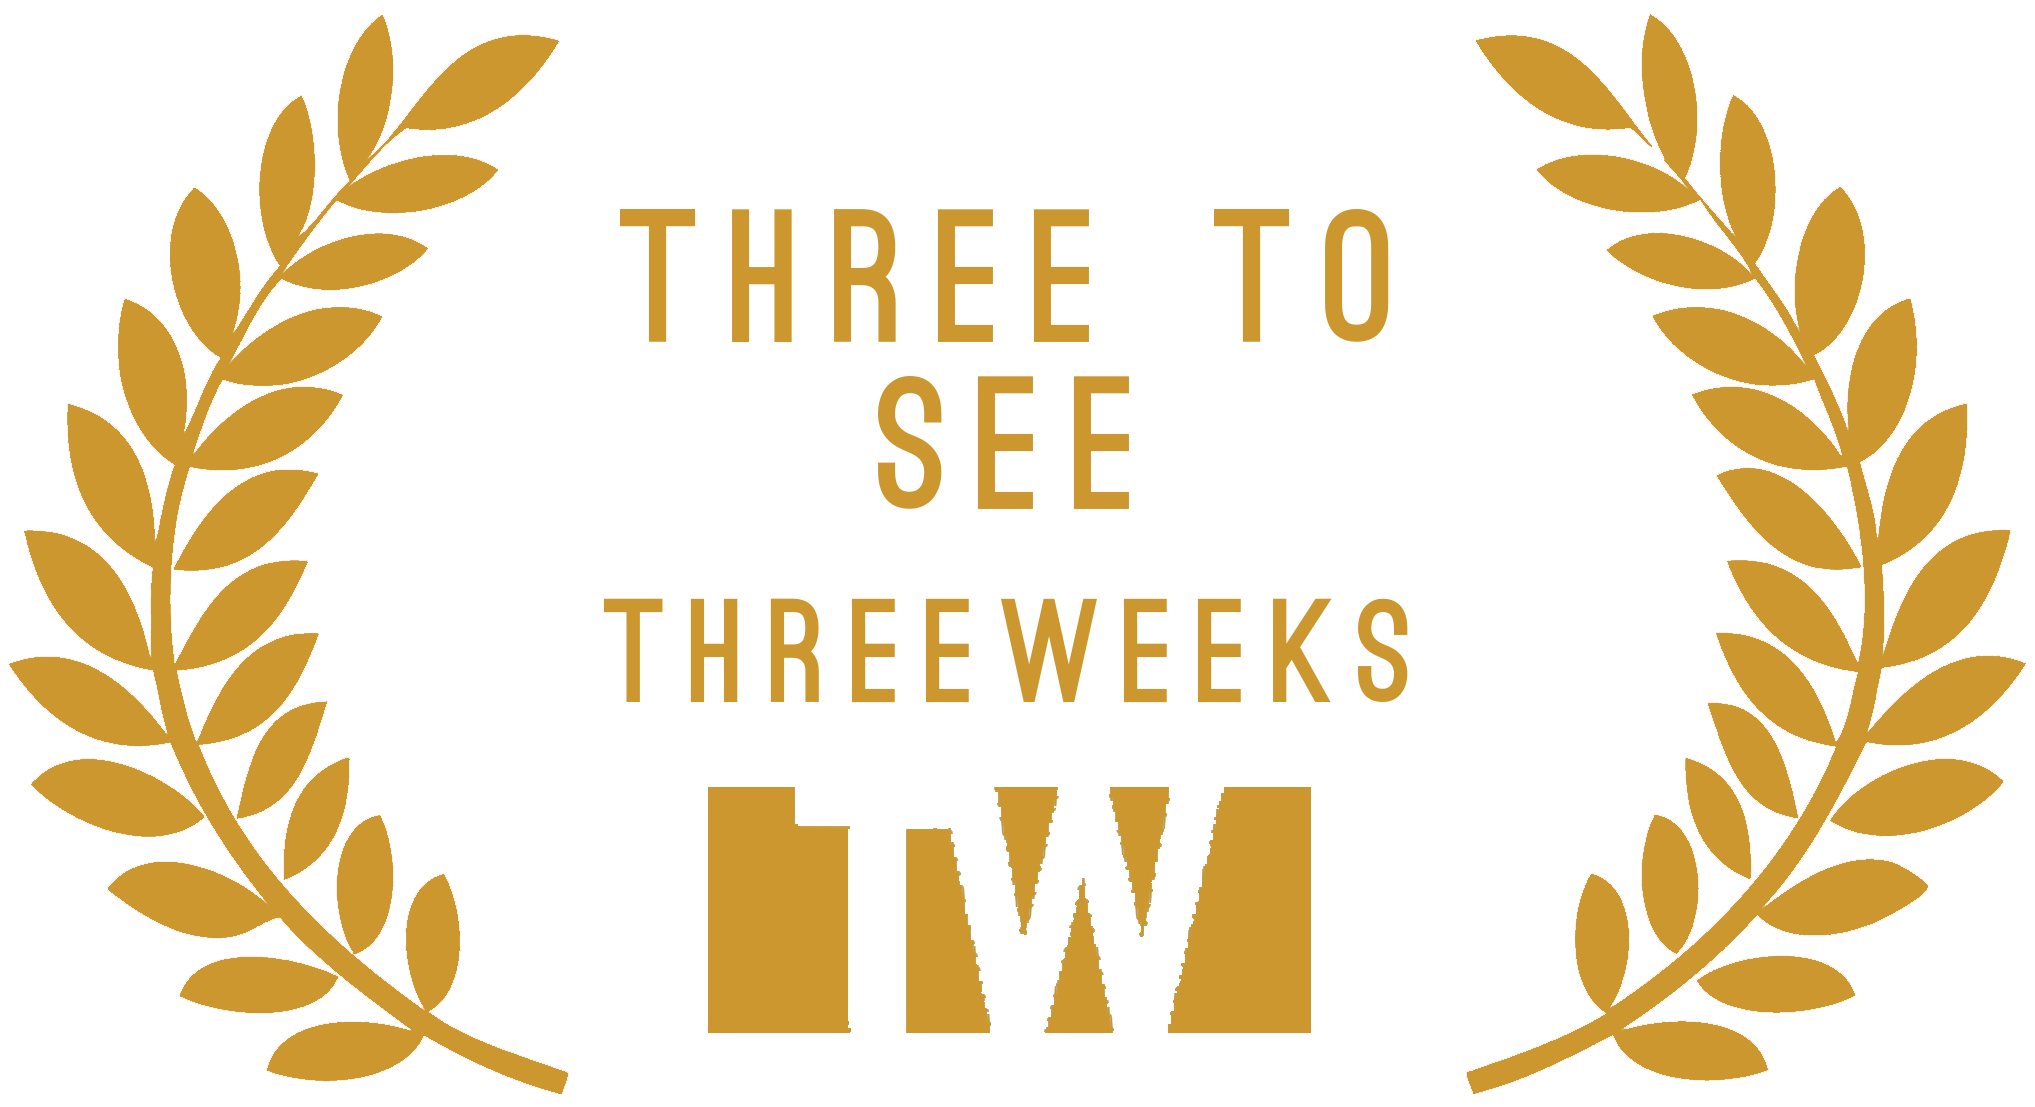 Three to see threeweeks edfringe